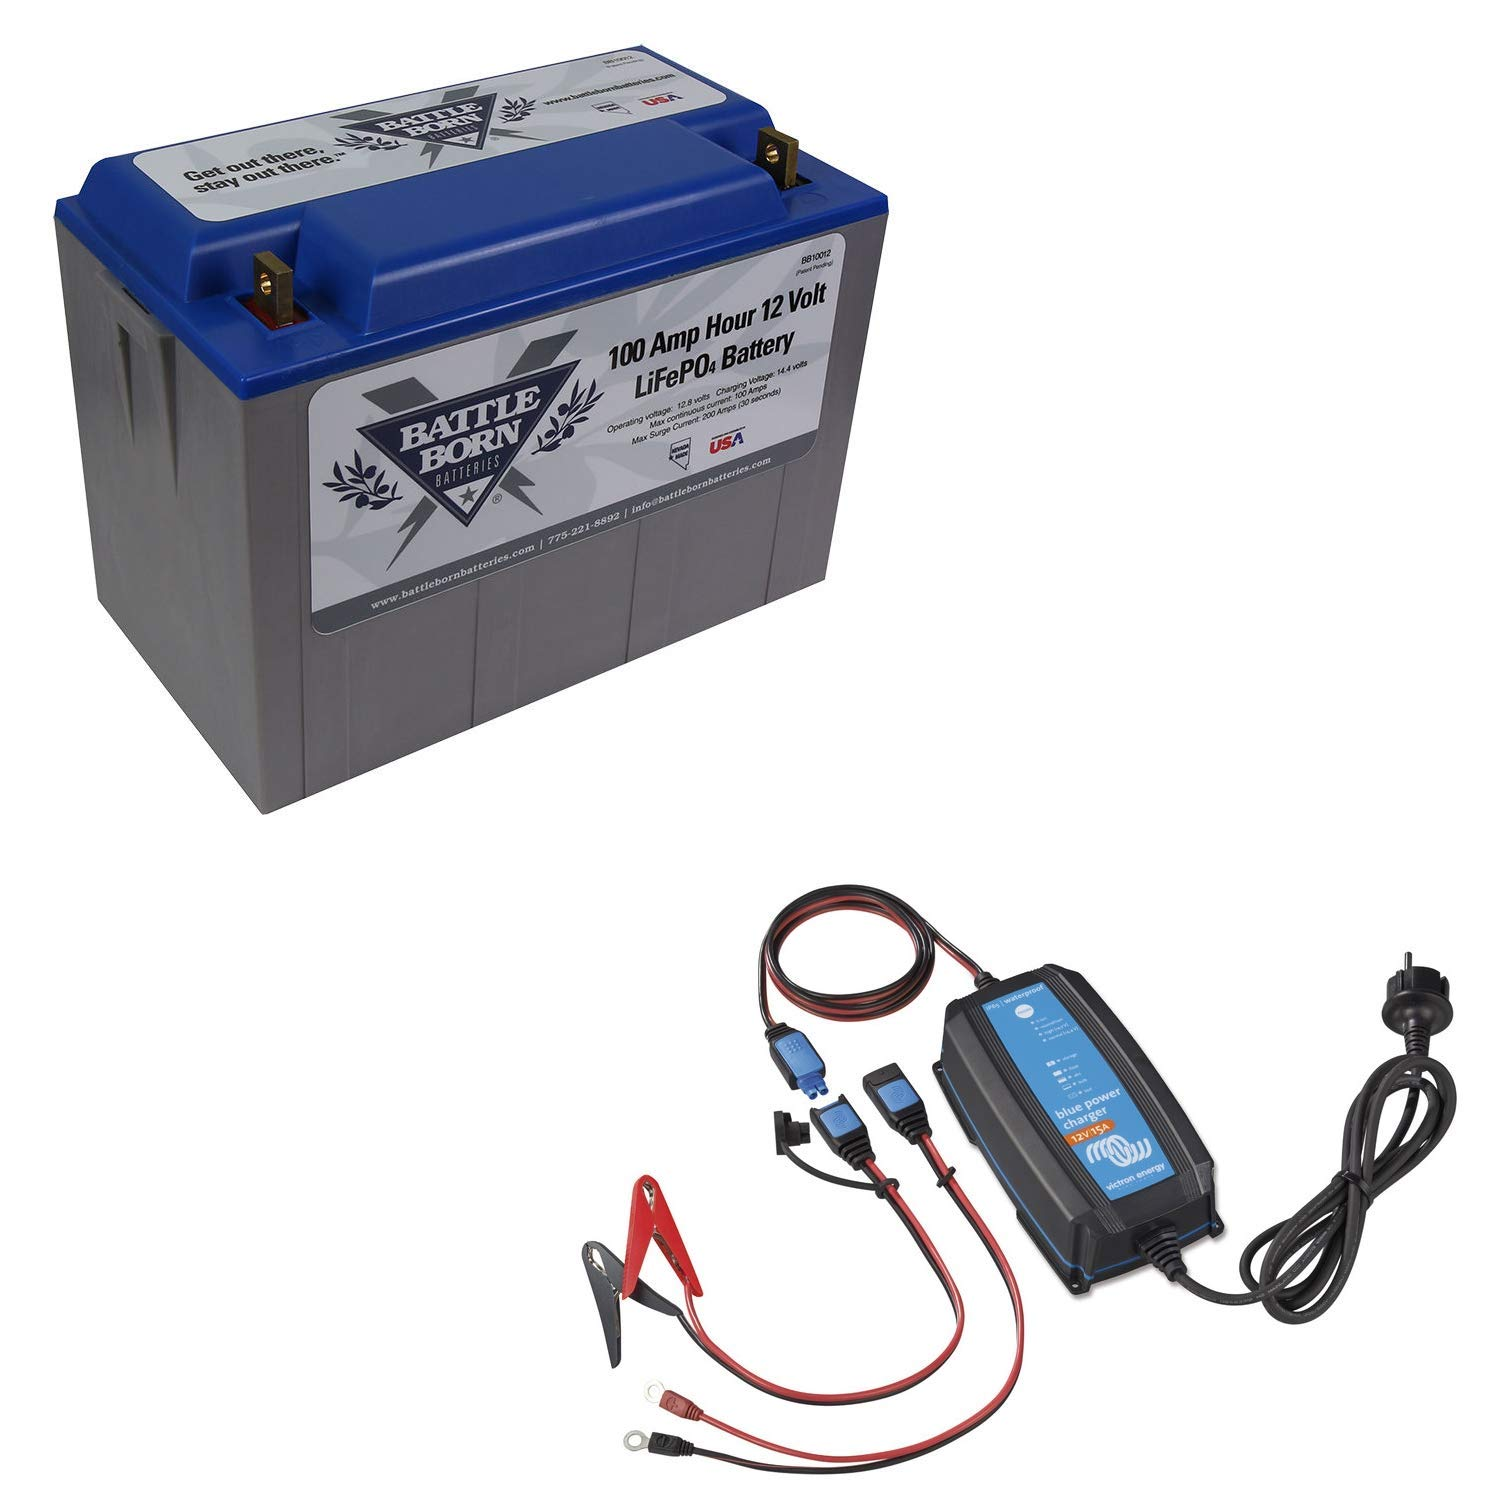 100 Ah Lifepo4 12 Volt Deep Cycle Battery Sports Outdoors Wiring Solar Panels To Bank